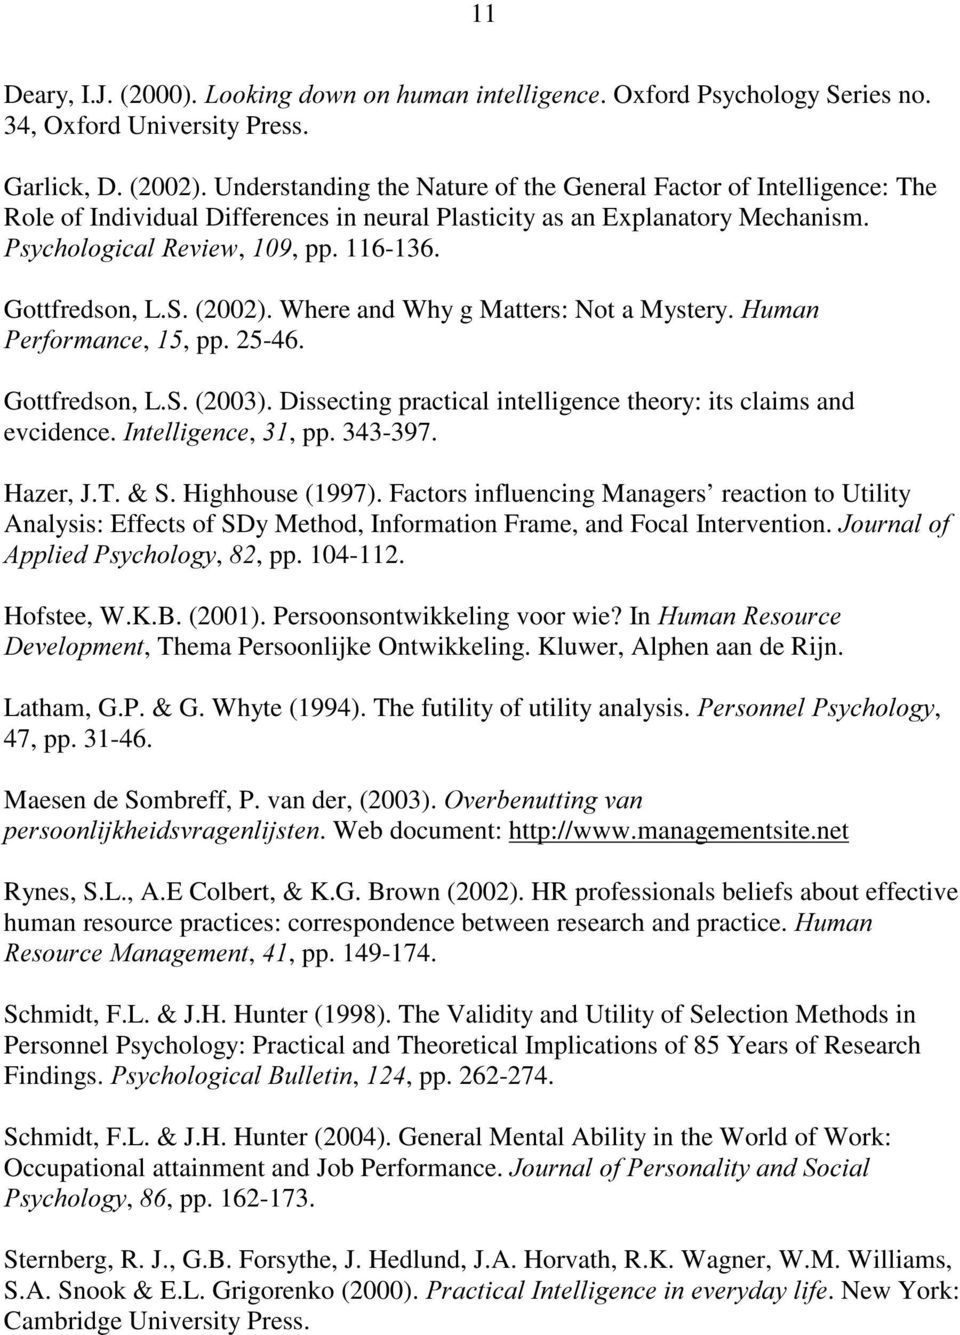 S. (2002). Where and Why g Matters: Not a Mystery. +XPDQ 3HUIRUPDQFH,, pp. 25-46. Gottfredson, L.S. (2003). Dissecting practical intelligence theory: its claims and evcidence.,qwhooljhqfh,, pp.